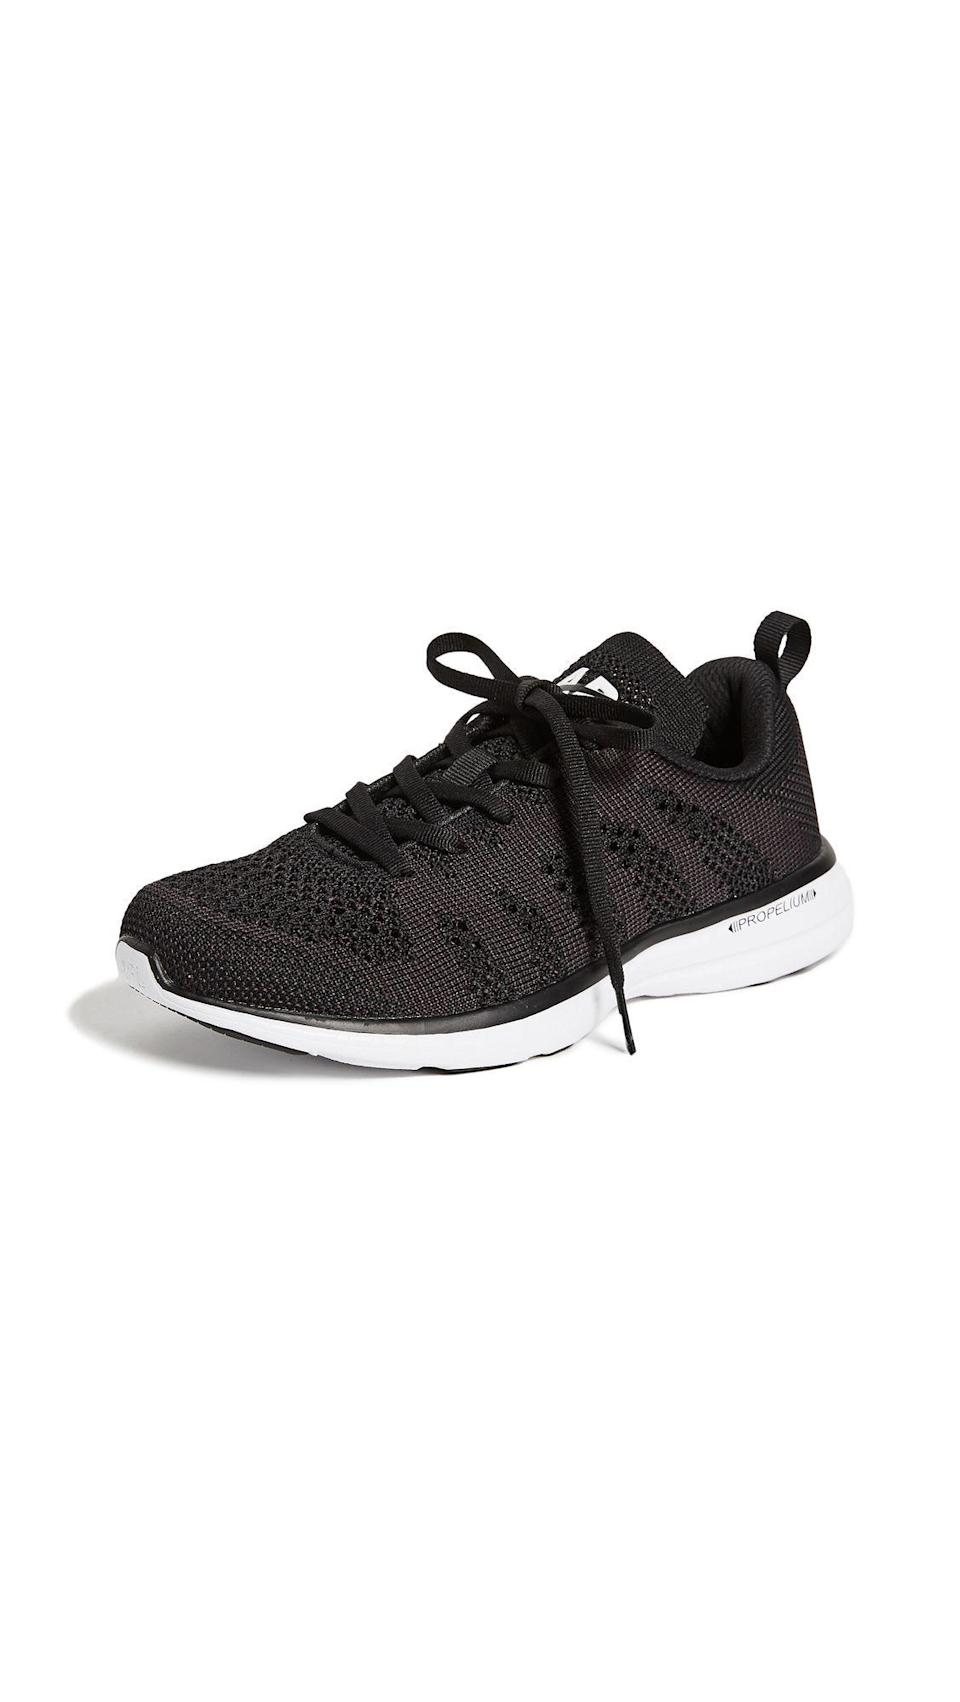 """<p><strong>APL: Athletic Propulsion Labs</strong></p><p>amazon.com</p><p><strong>$140.00</strong></p><p><a href=""""https://www.amazon.com/dp/B0785R93R4?tag=syn-yahoo-20&ascsubtag=%5Bartid%7C10051.g.36317445%5Bsrc%7Cyahoo-us"""" rel=""""nofollow noopener"""" target=""""_blank"""" data-ylk=""""slk:Shop Now"""" class=""""link rapid-noclick-resp"""">Shop Now</a></p><p>Founded by former college athletes, APL running sneakers offer cushy support and sleek design. Whether she's super sporty or just likes a nice, long leisurely walk here and there, she's guaranteed to live in these. </p>"""